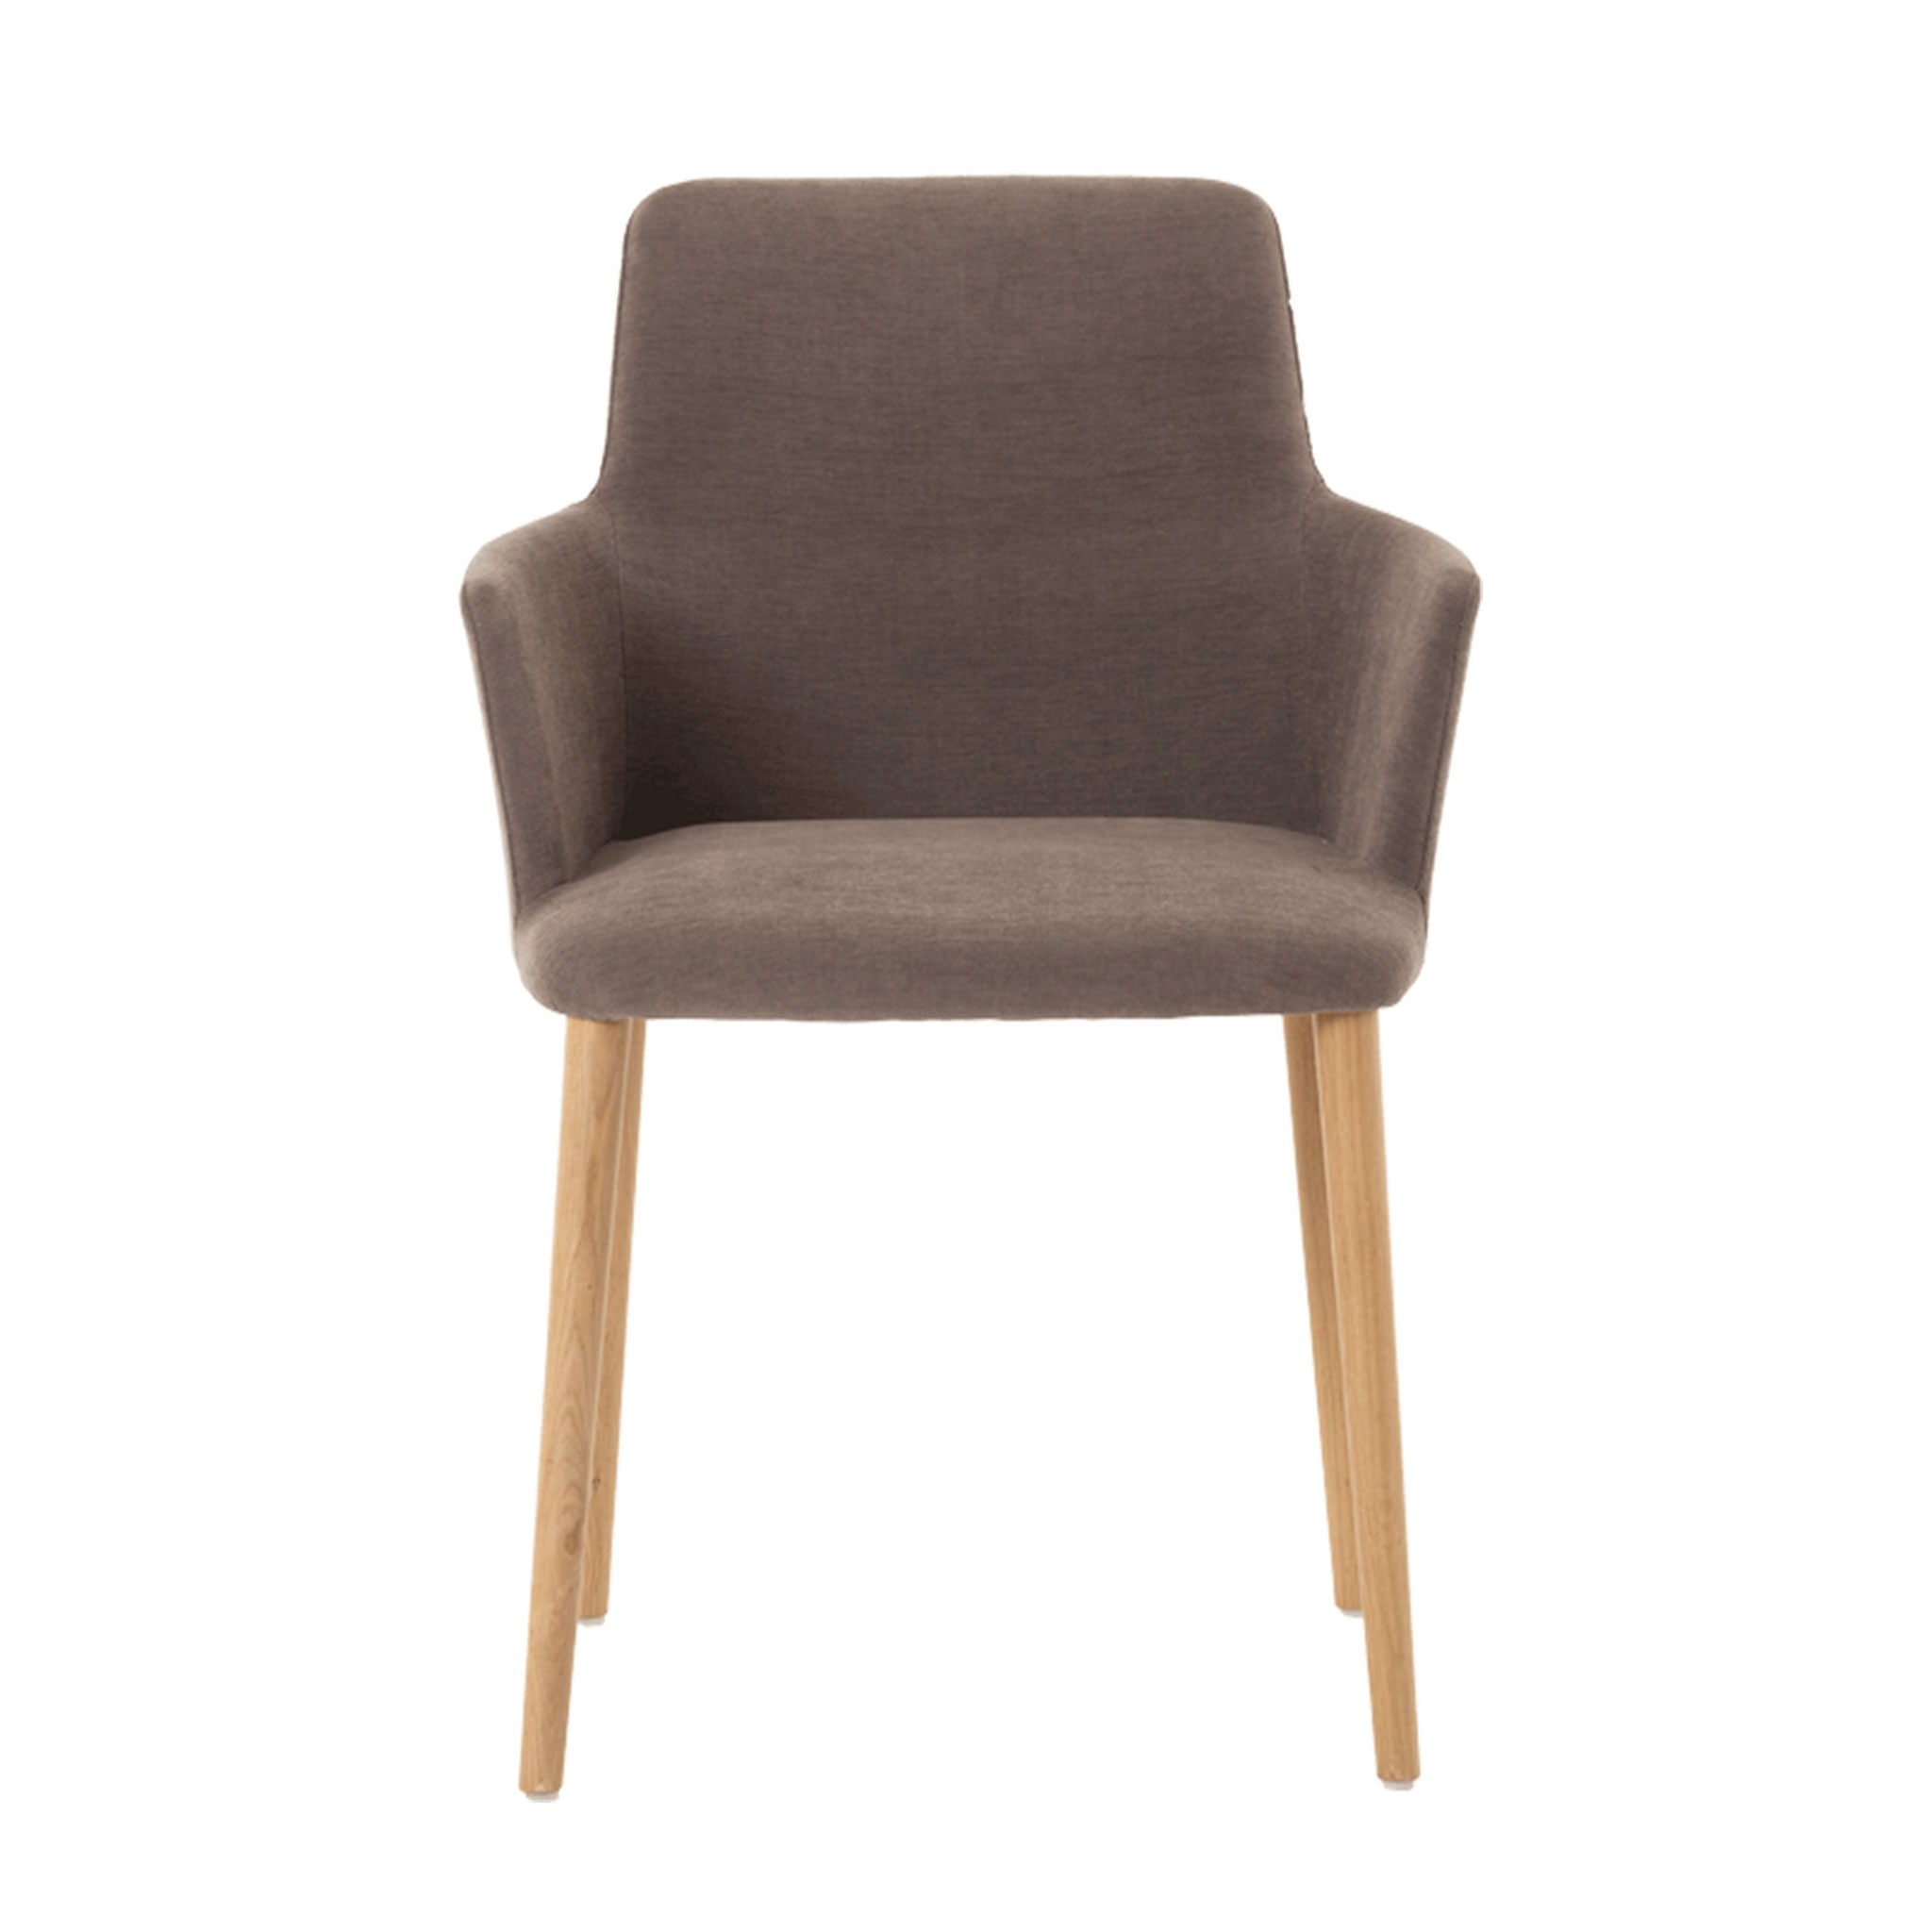 Cos chair with armrest - wood legs